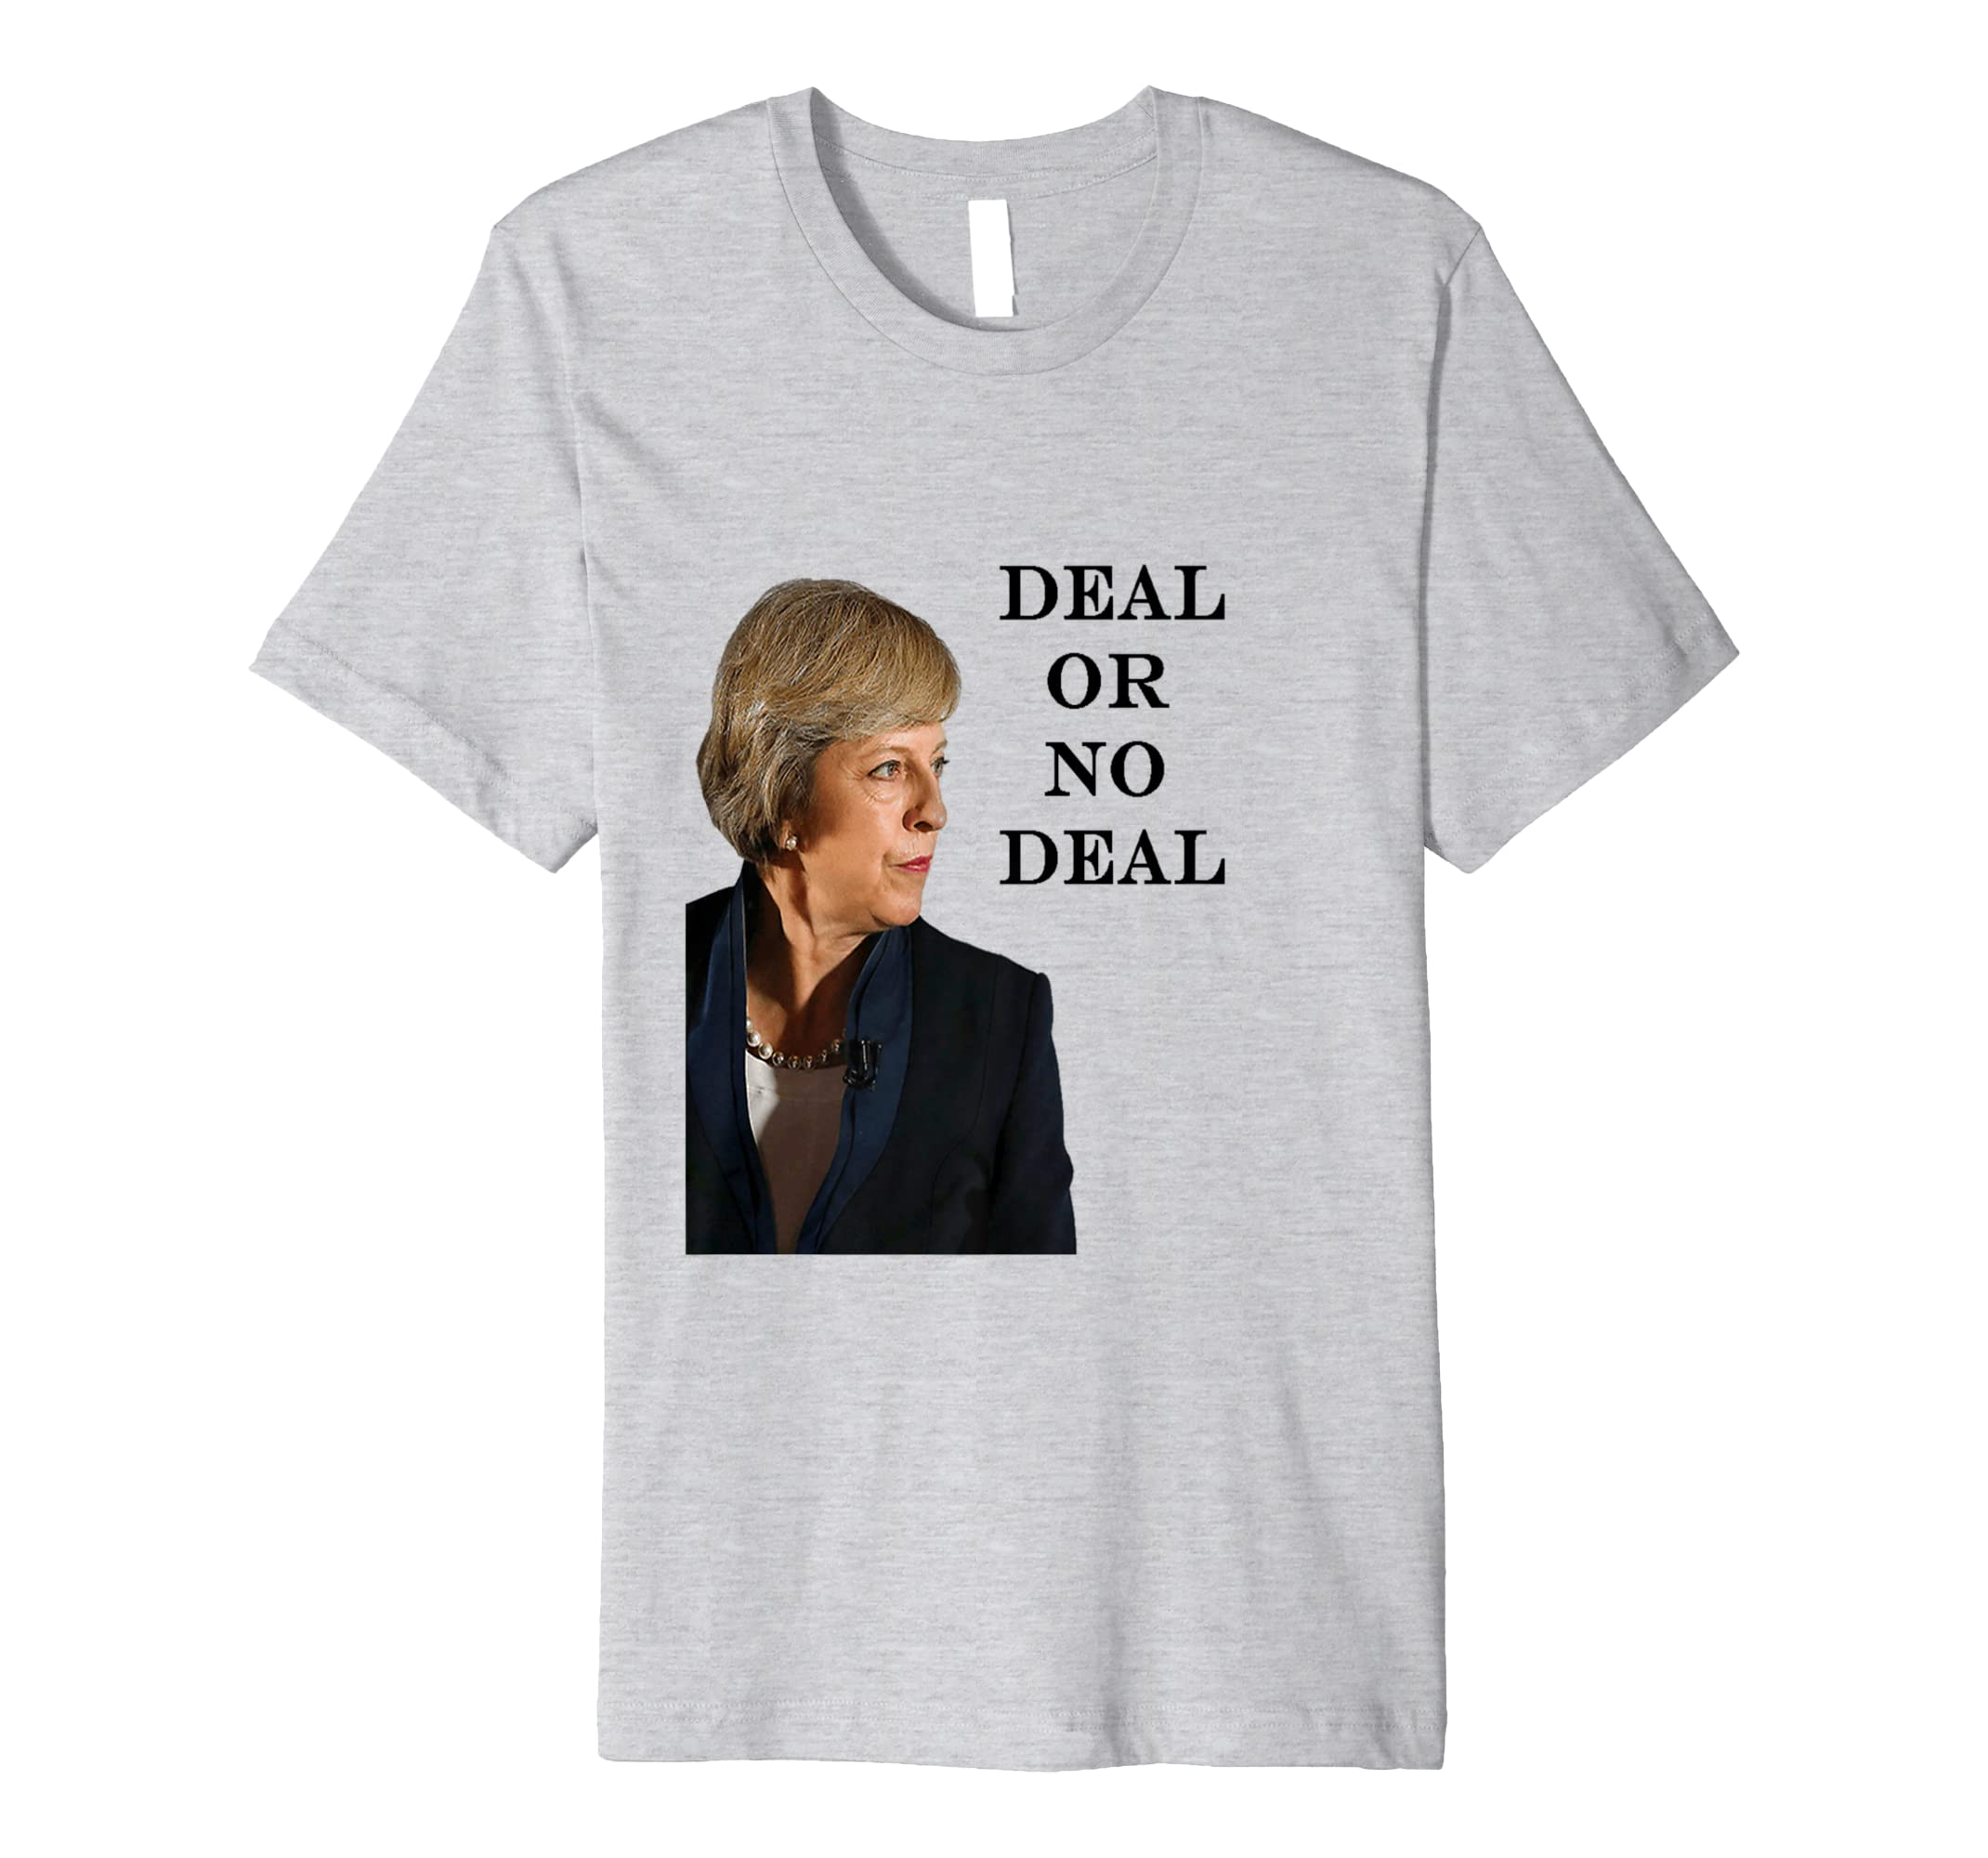 f437b778 Deal or No Deal Theresa May Brexit T-Shirt: Amazon.co.uk: Clothing